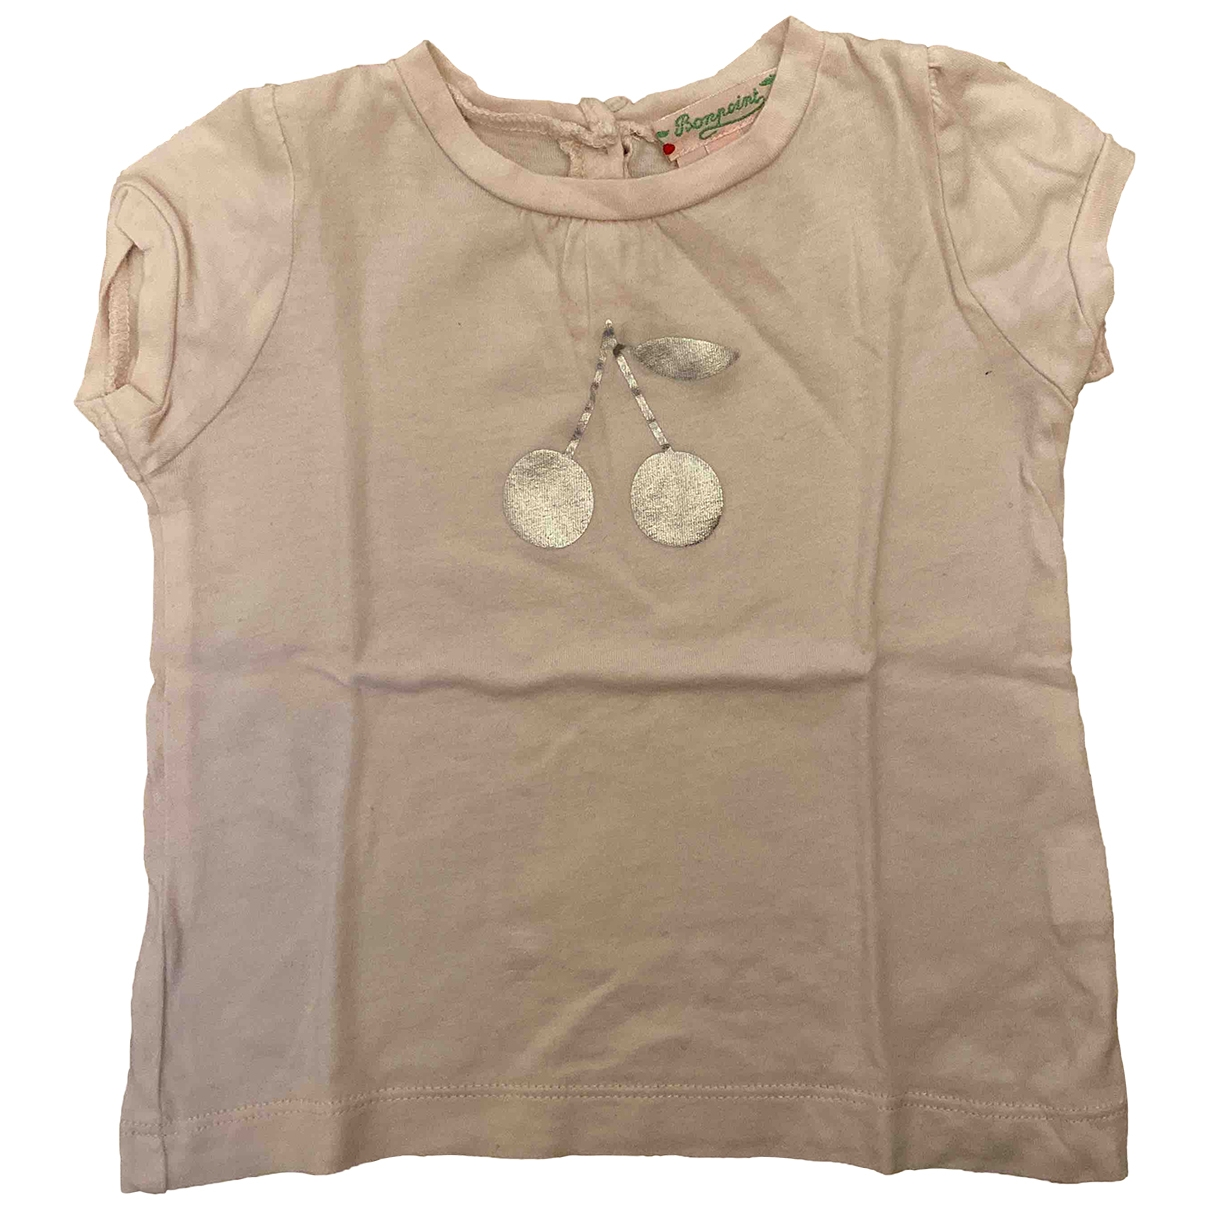 Bonpoint \N Pink Cotton  top for Kids 6 months - up to 67cm FR